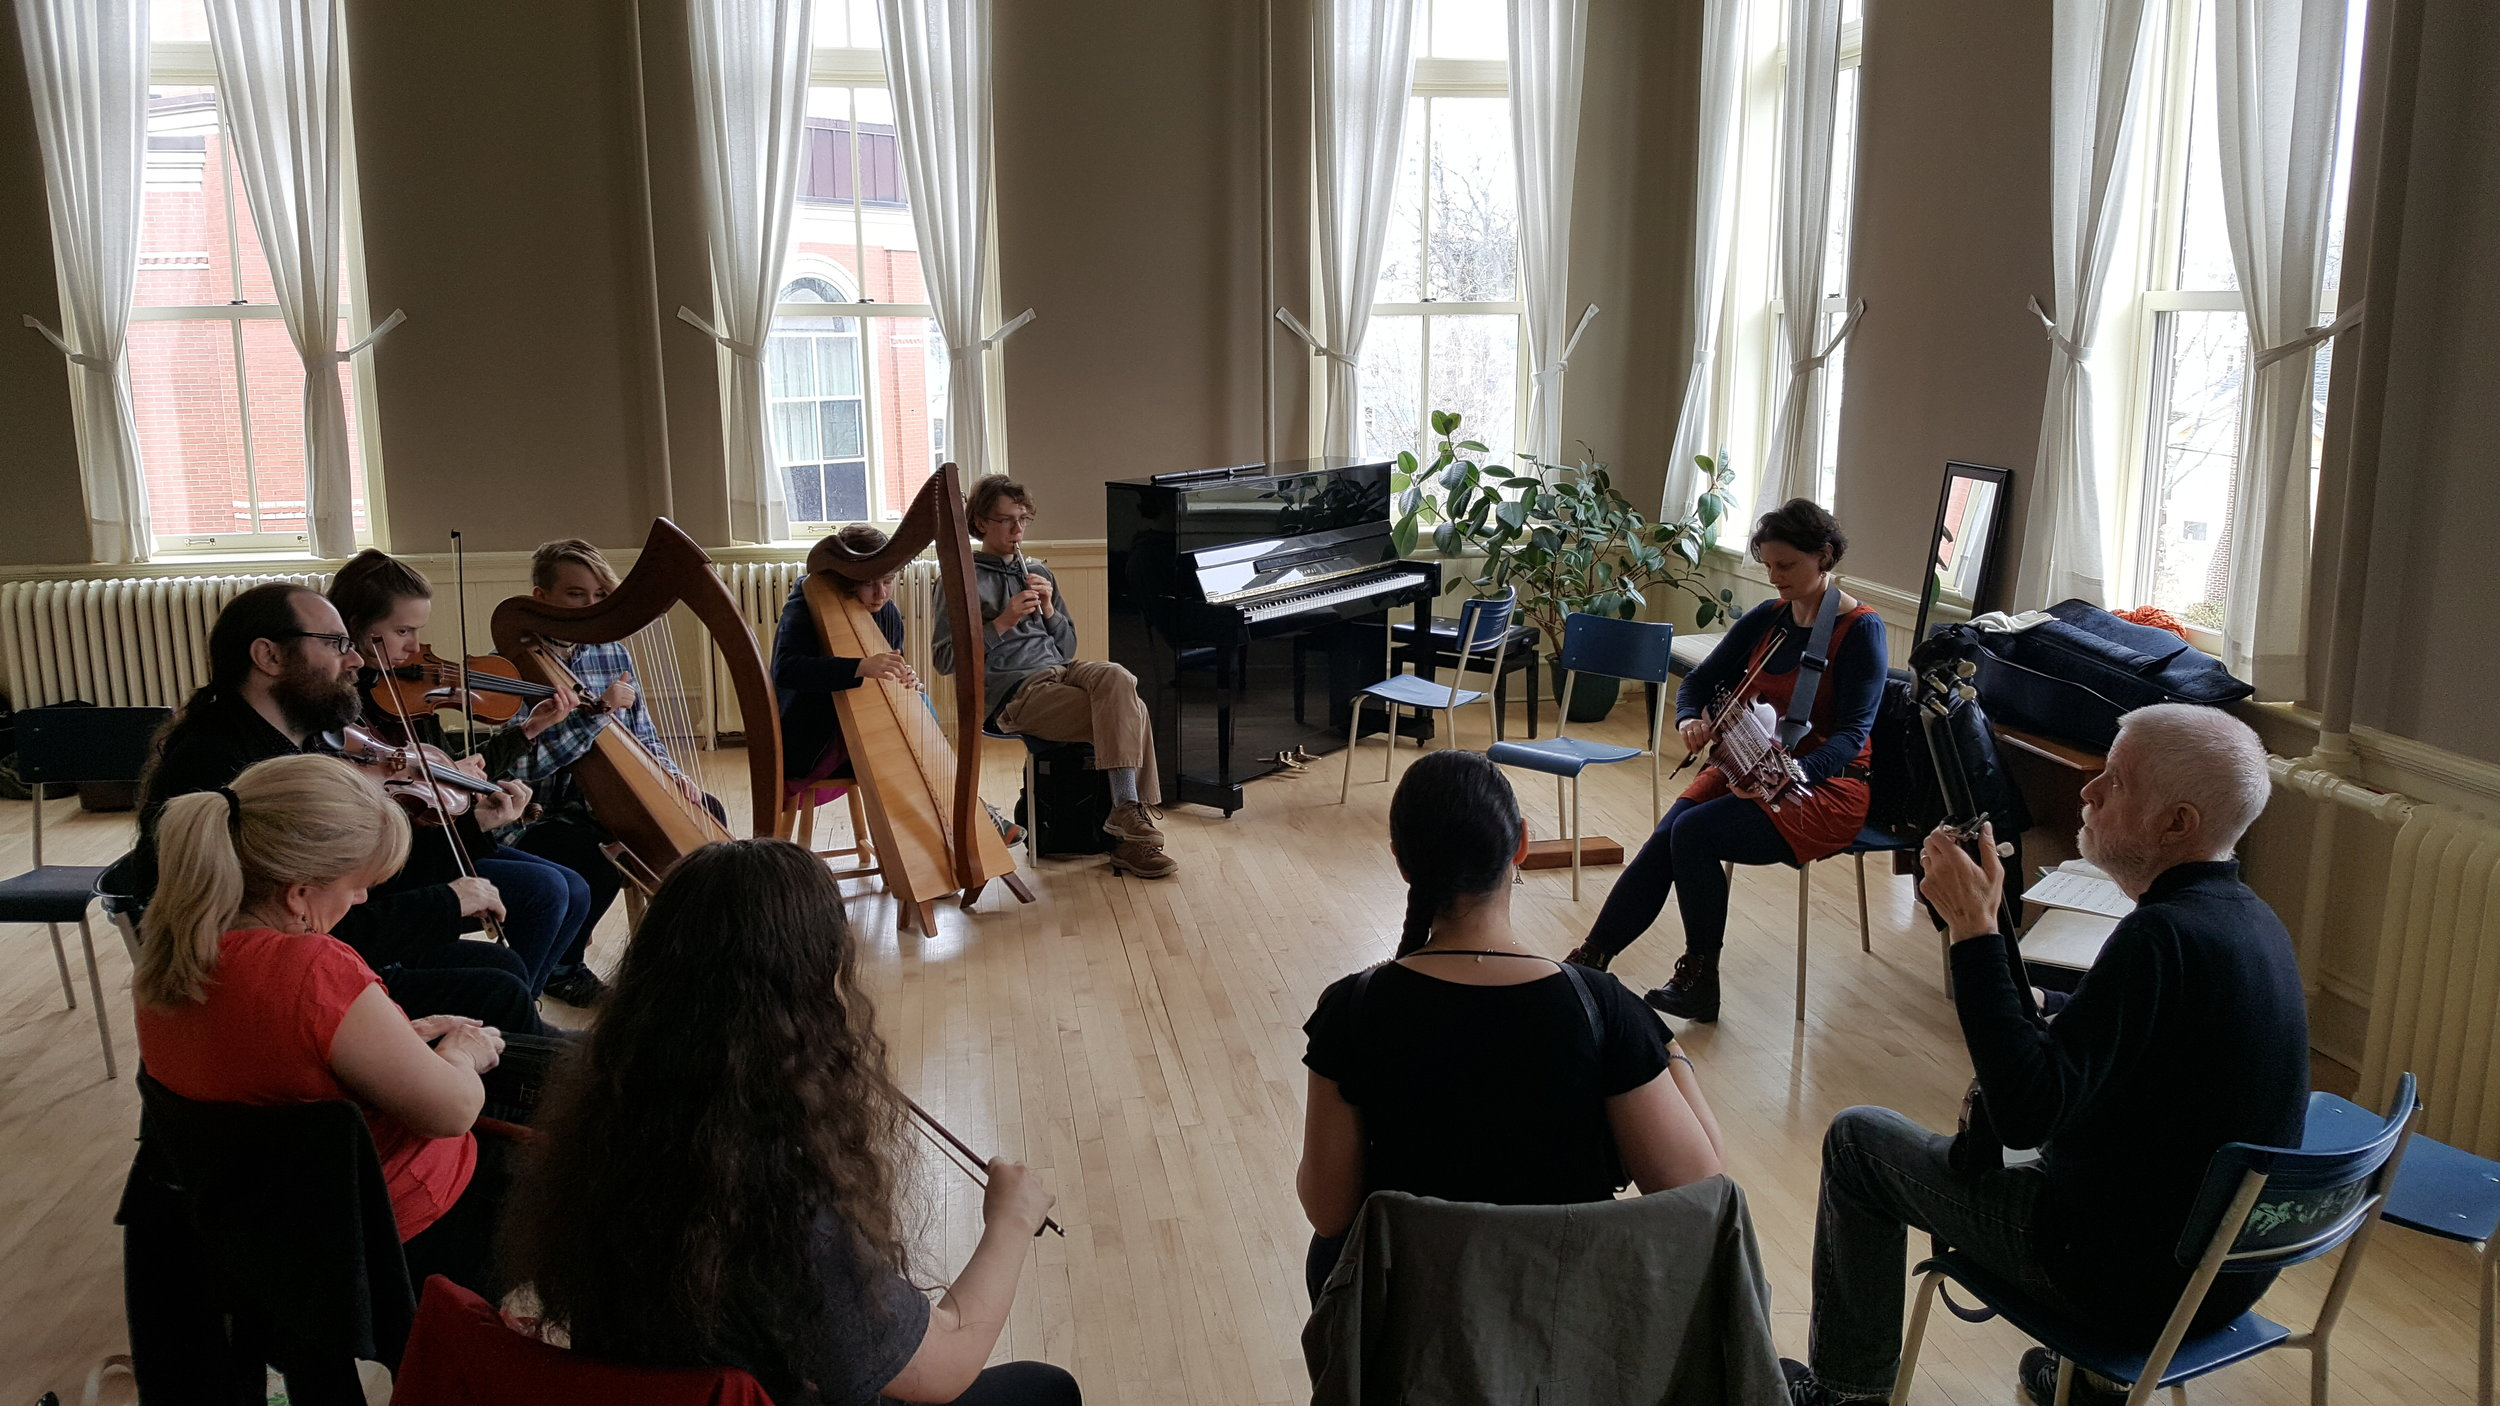 Class on traditional Swedish tunes with guest instructor Kirsty Money on nyckelharpa, Apr. 28, 2019.